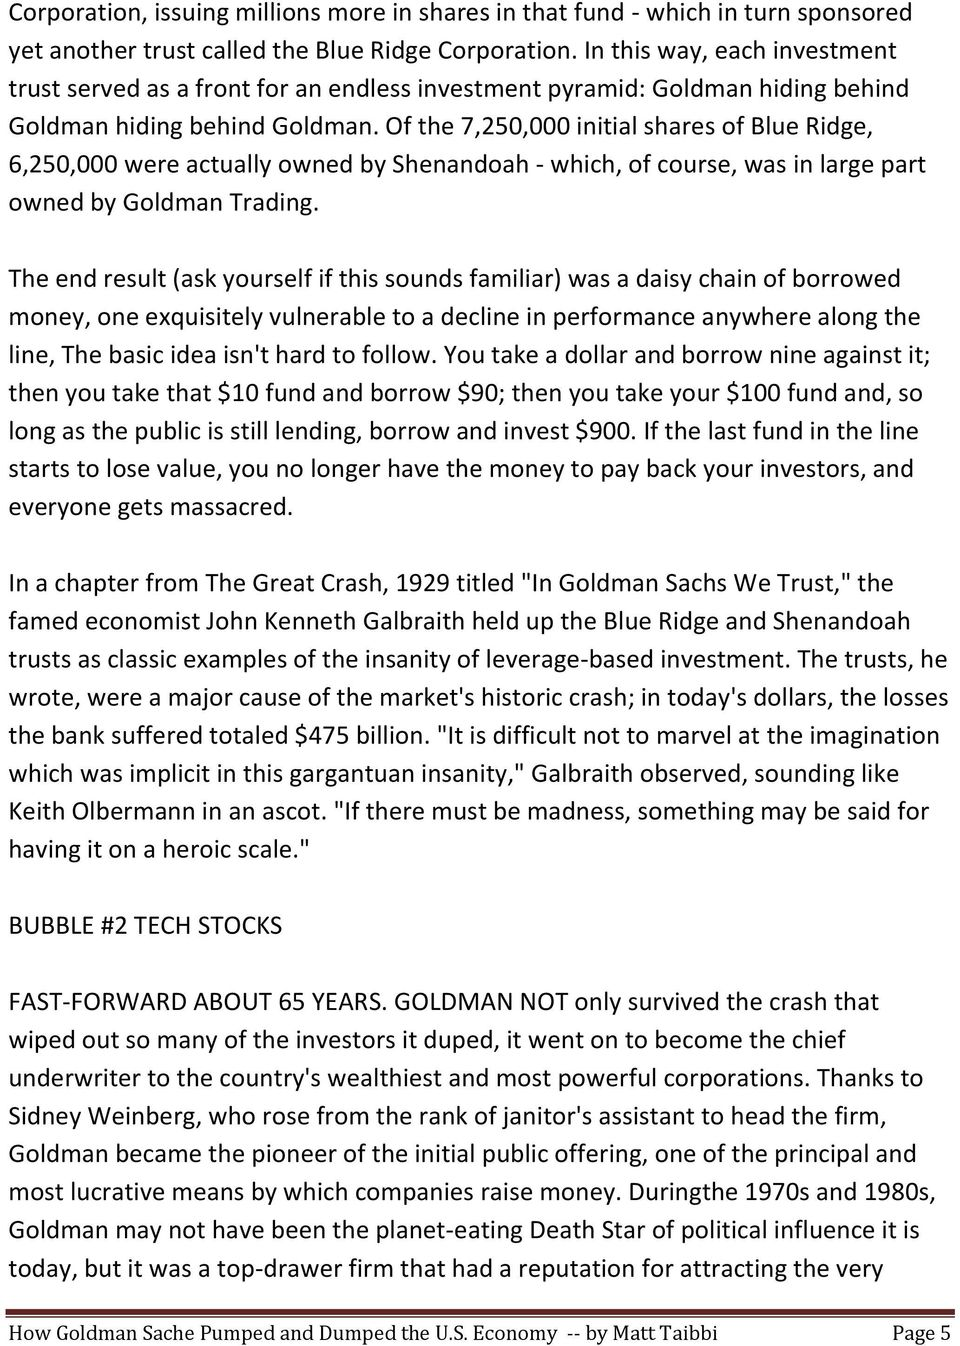 Of the 7,250,000 initial shares of Blue Ridge, 6,250,000 were actually owned by Shenandoah - which, of course, was in large part owned by Goldman Trading.